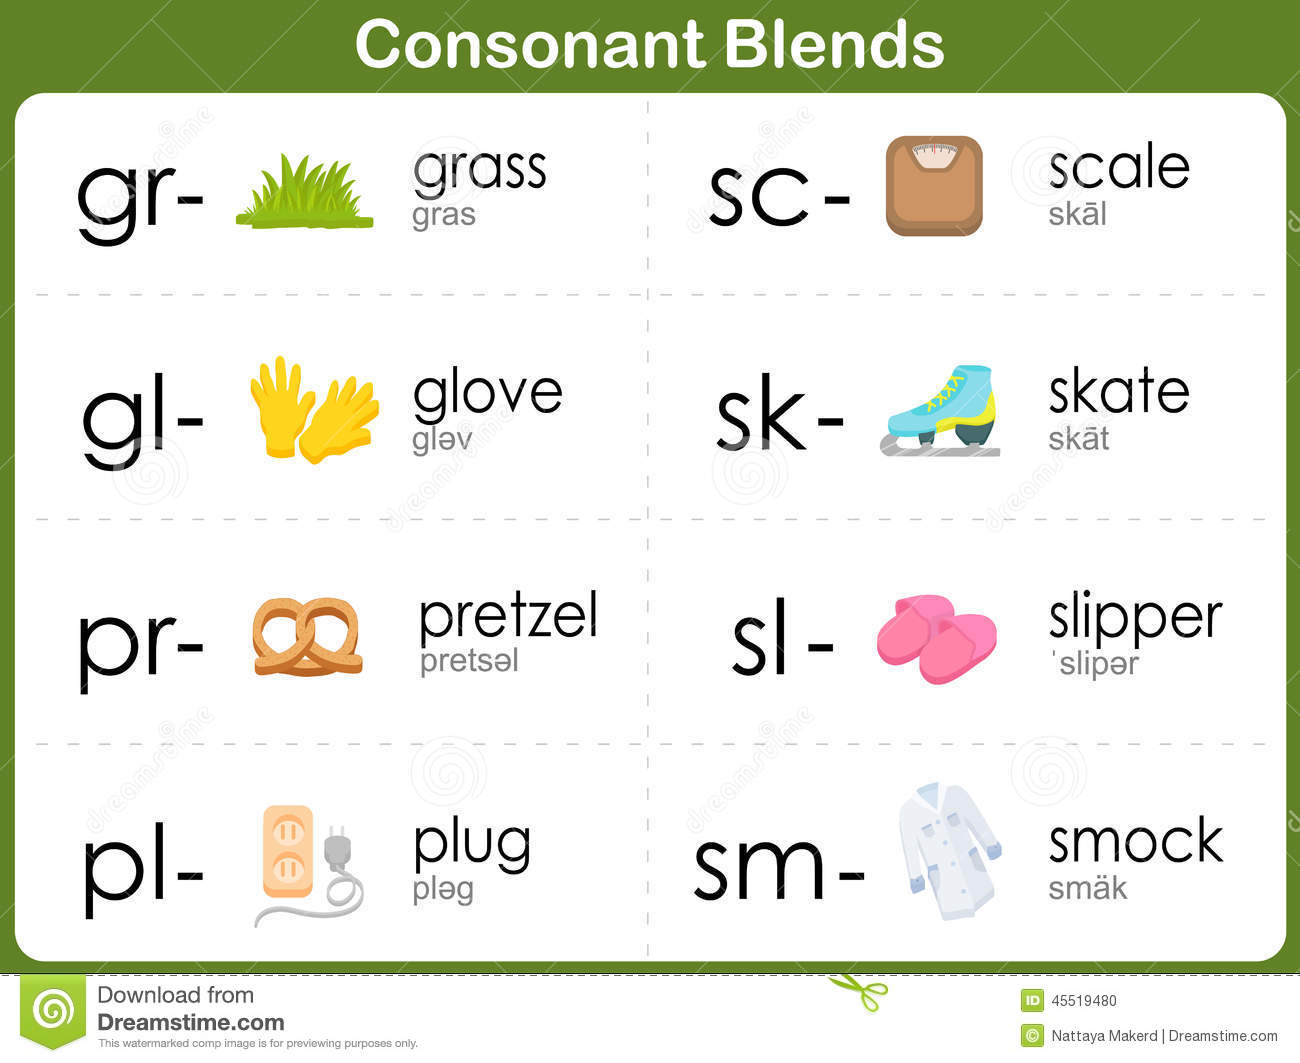 Consonant Blends Worksheet For Kids Stock Vector - Image: 45519480